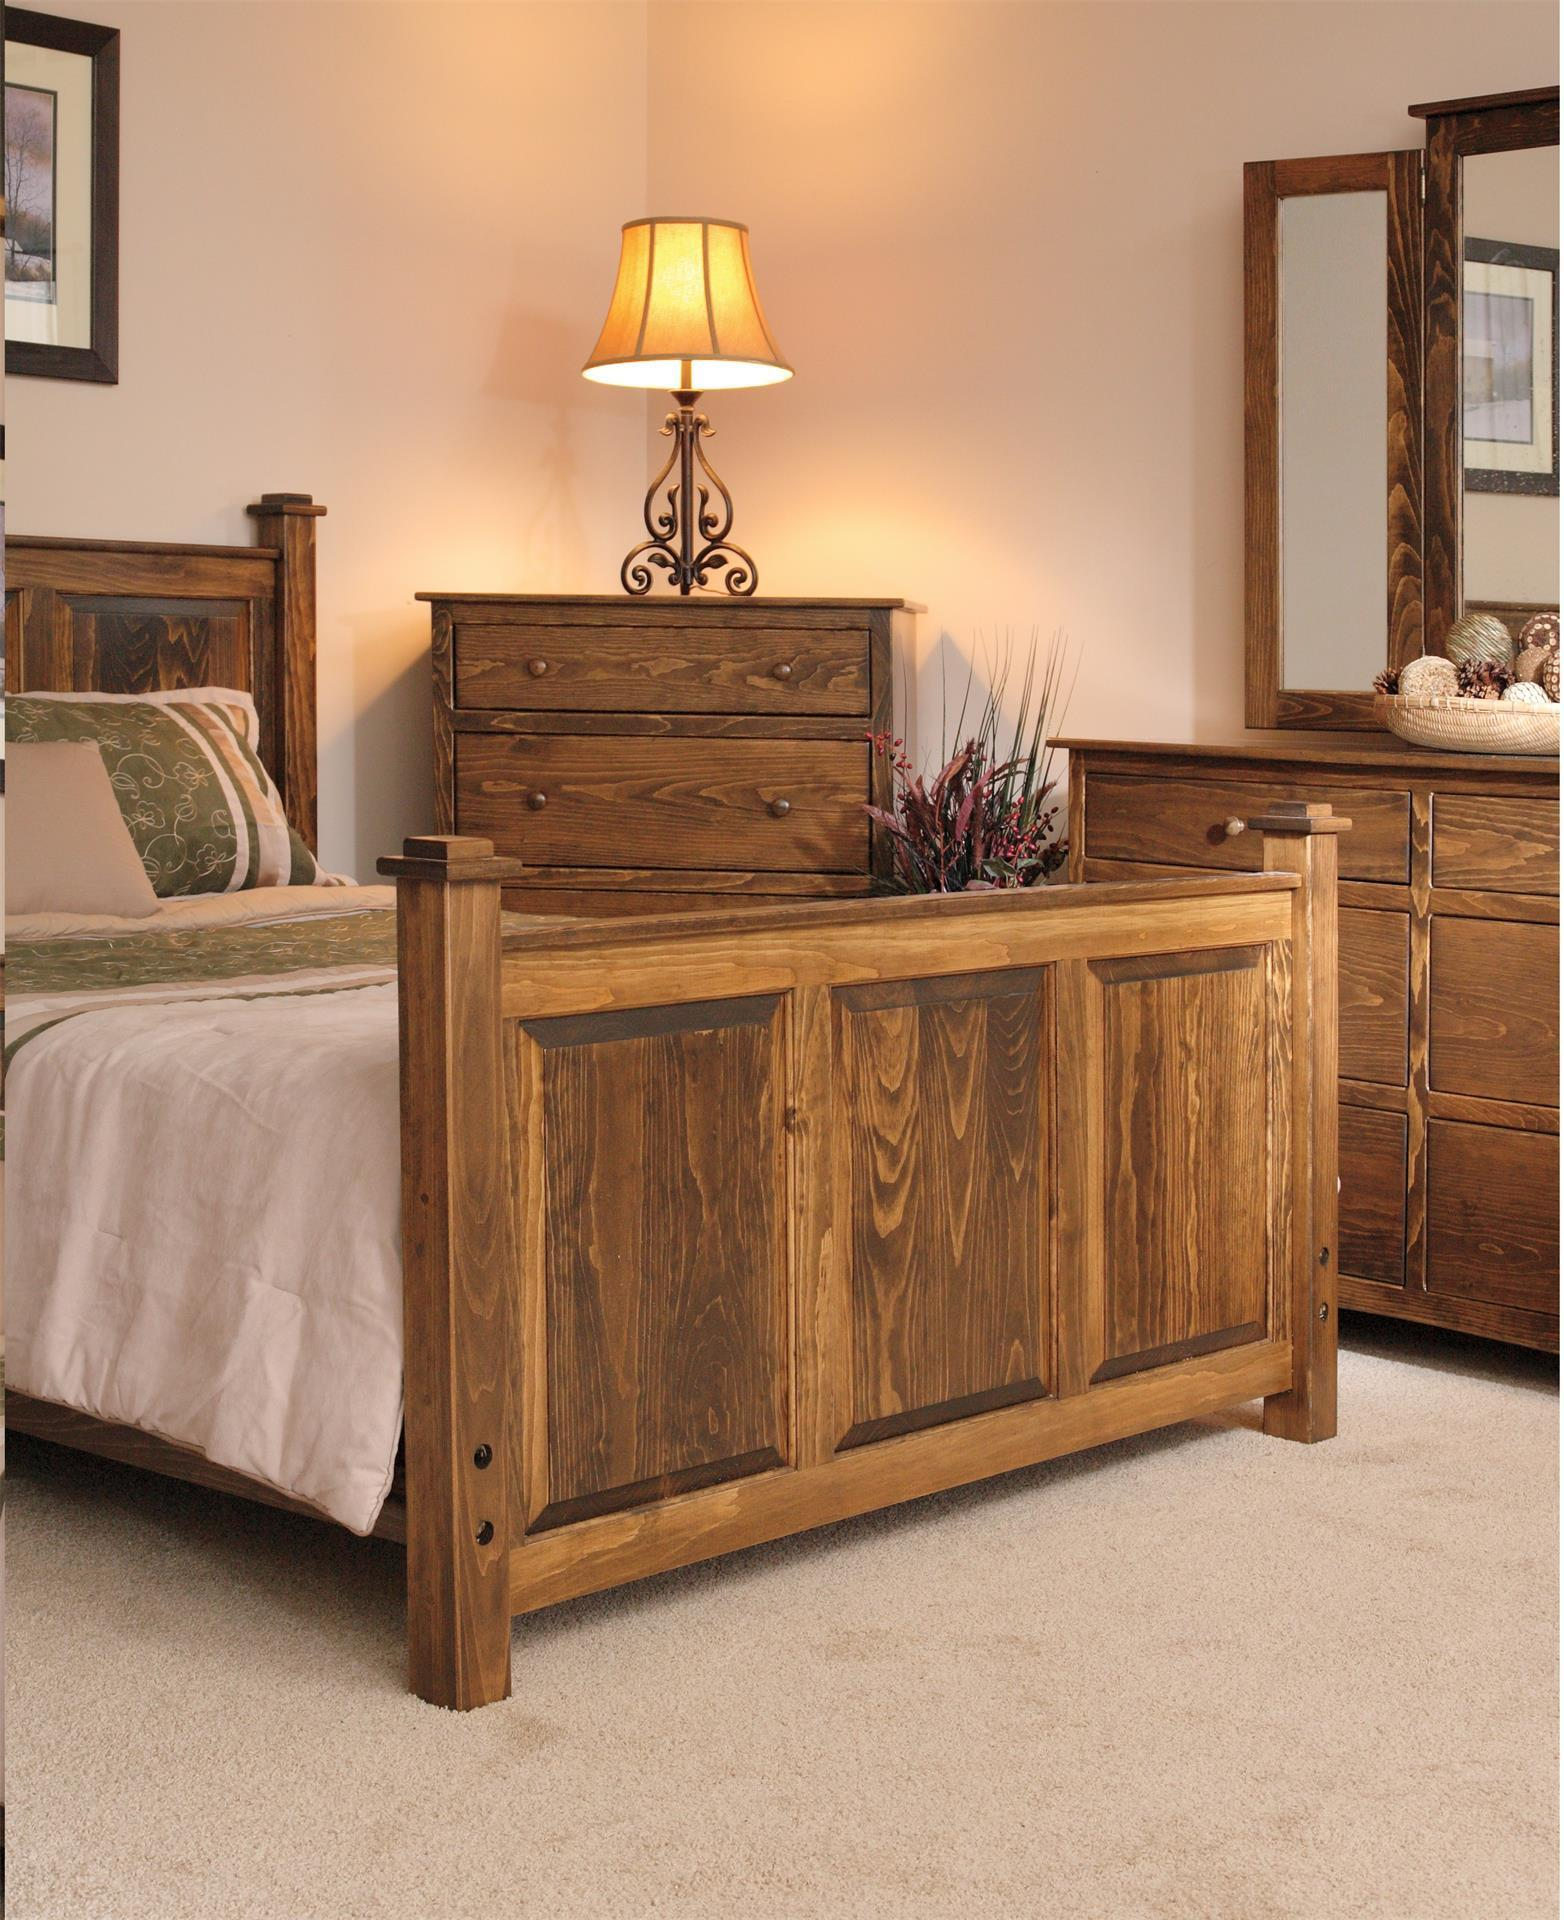 Wood Pine Bedroom Furniture from DutchCrafters Amish Furniture